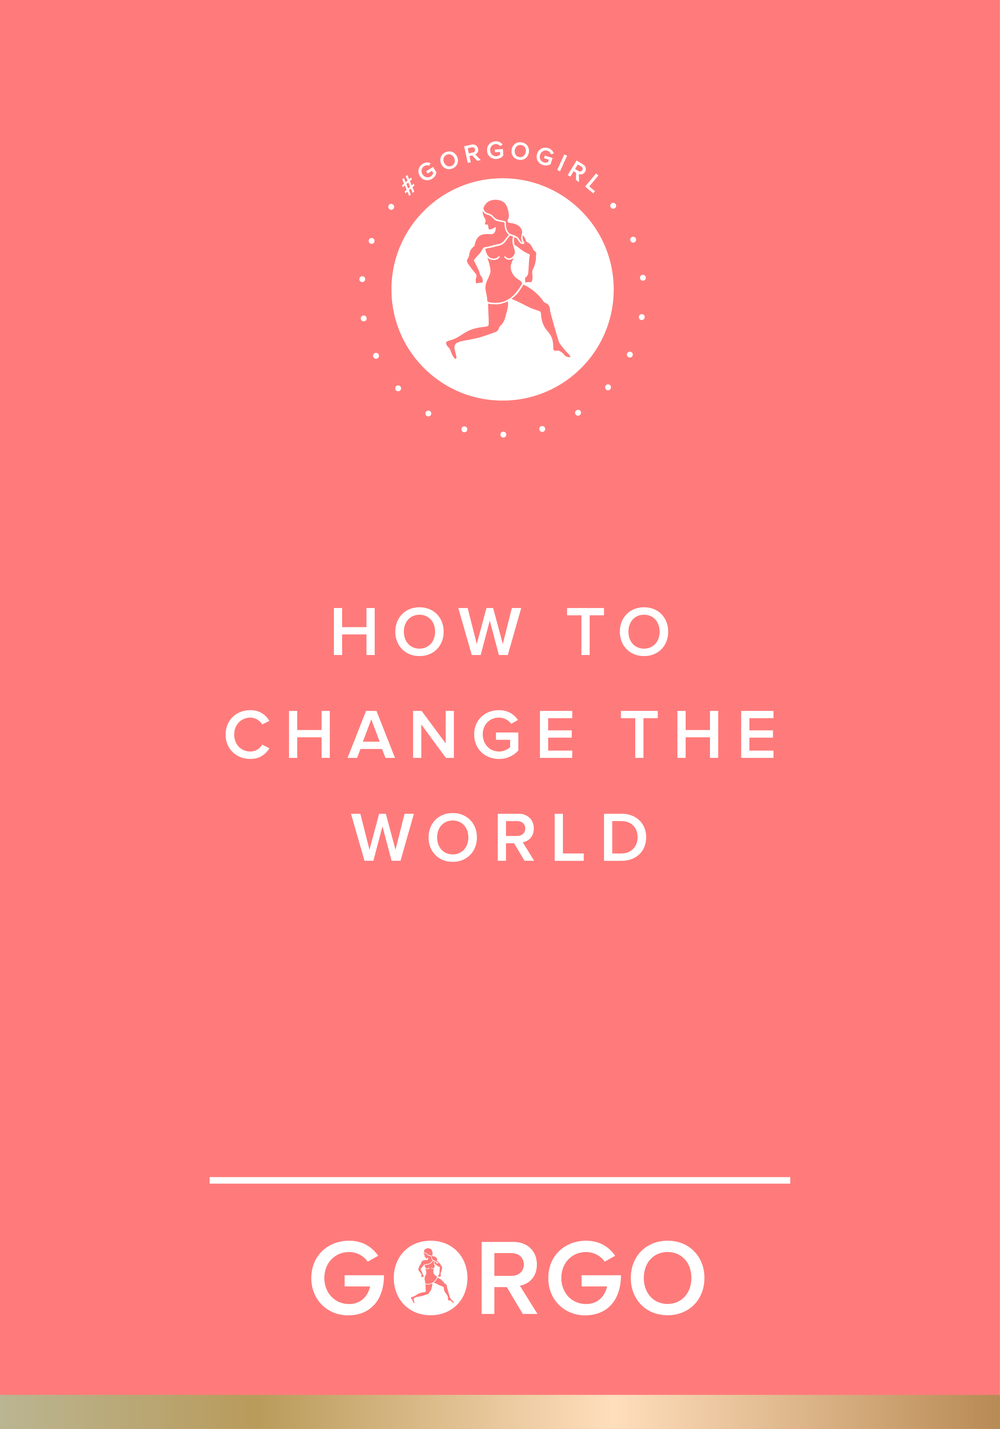 How to Change the World #gorgogirl